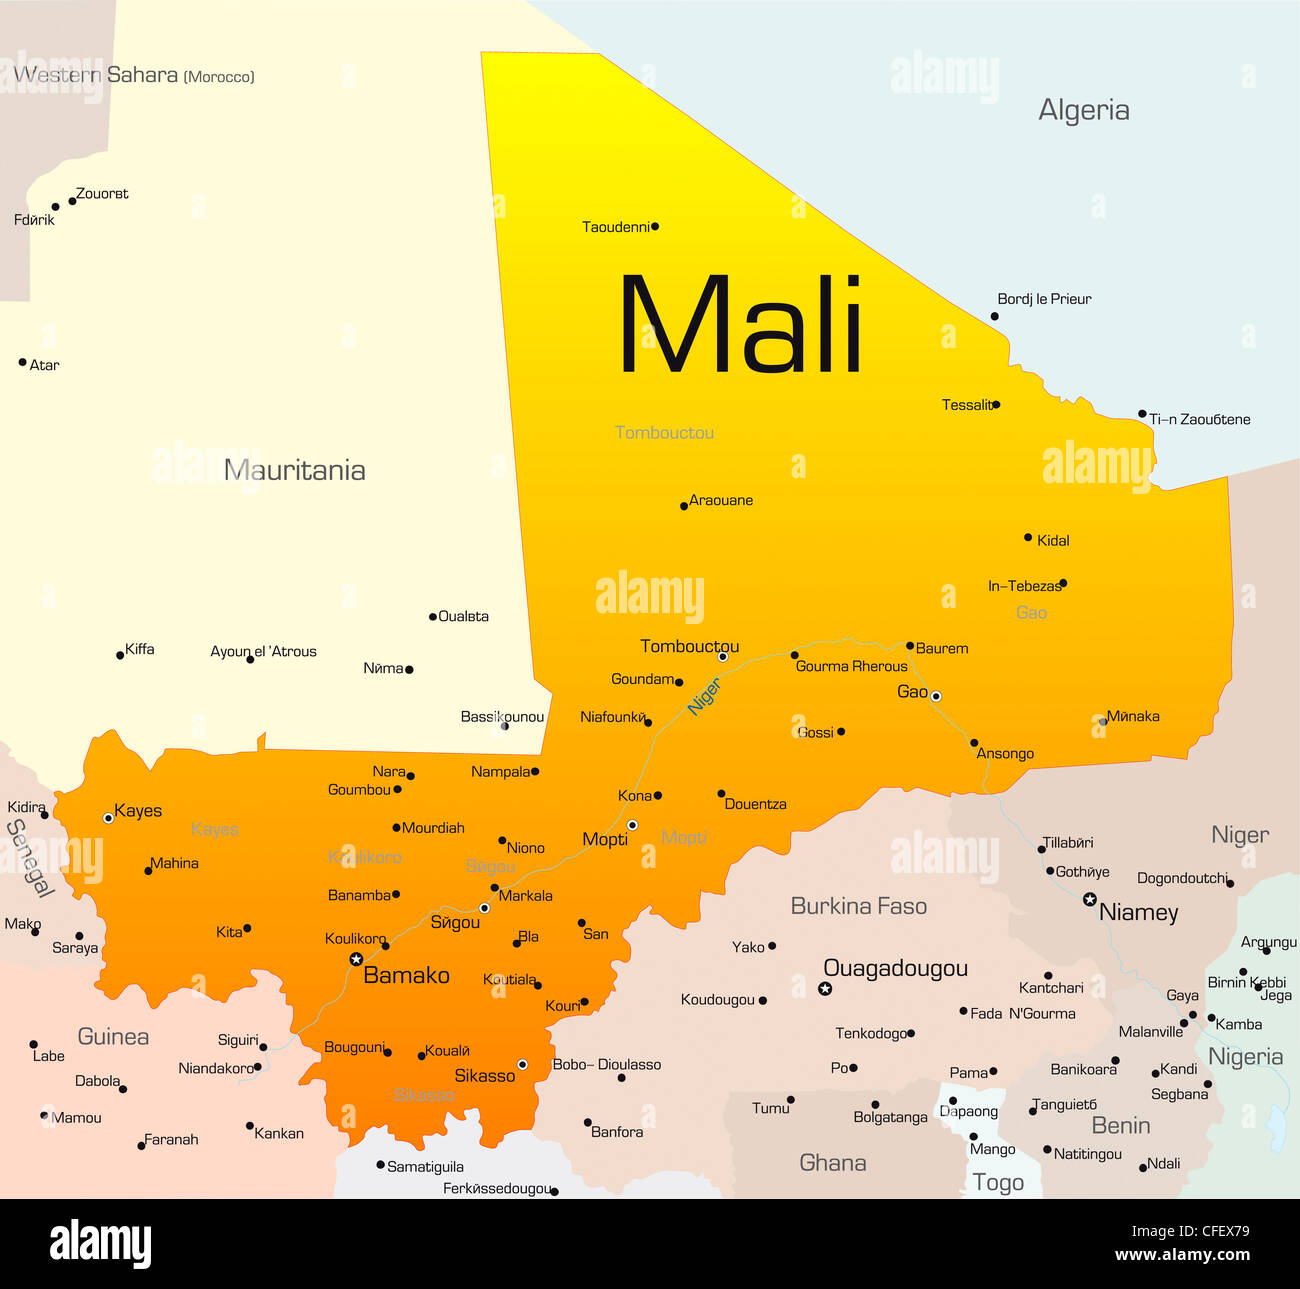 Abstract vector color map of Mali country Stock Photo: 43968493 - Alamy